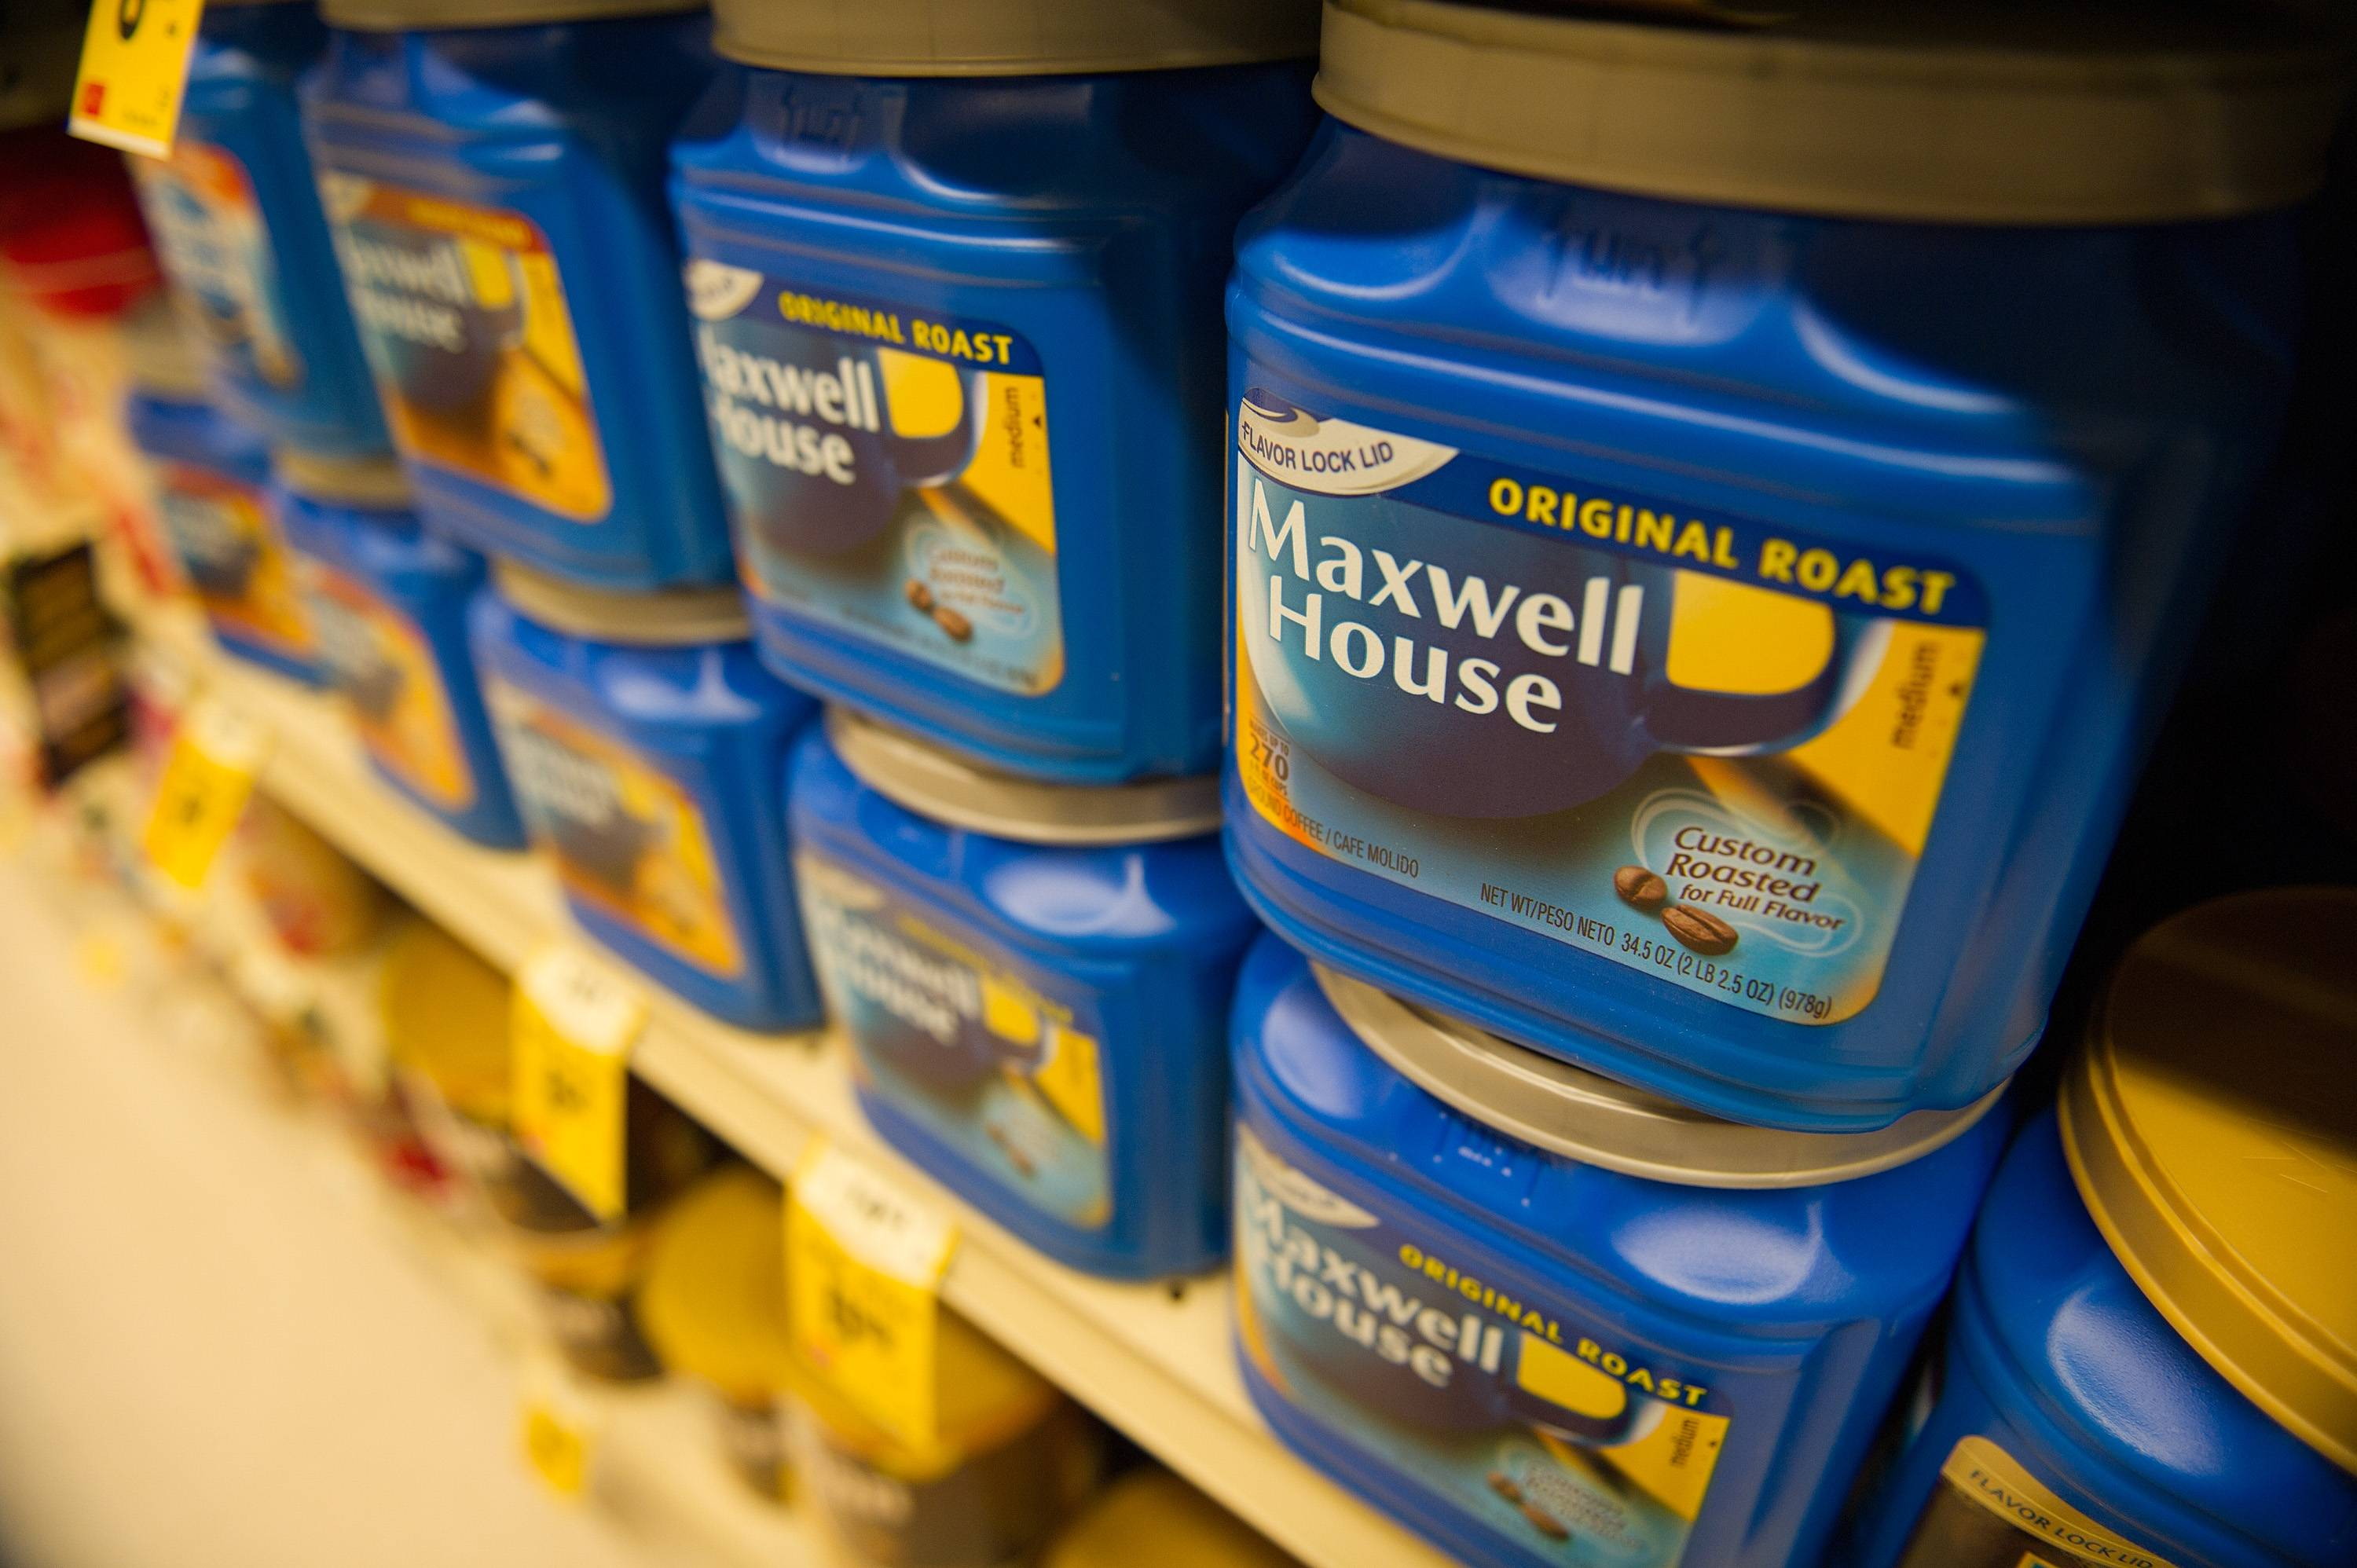 Keurig Green Mountain Inc. surged to a record high after announcing a deal to bring Northfield-based Kraft Foods Group Inc. coffee brands such as Maxwell House to its home brewing system.